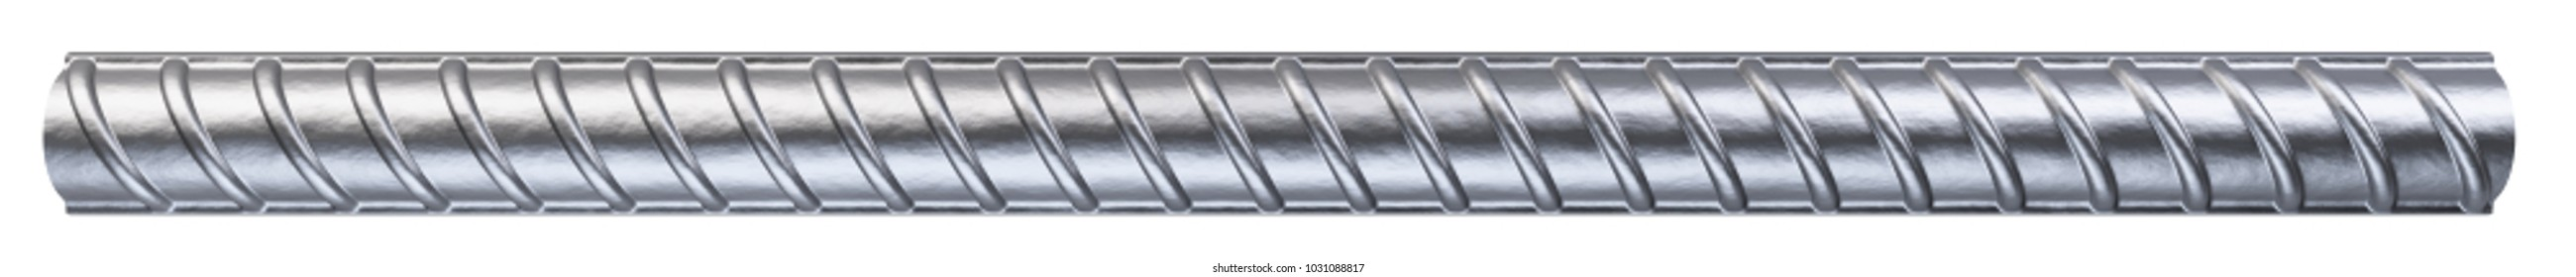 Reinforcement steel bar. Steel building armature. 3d illustration isolated on white background.